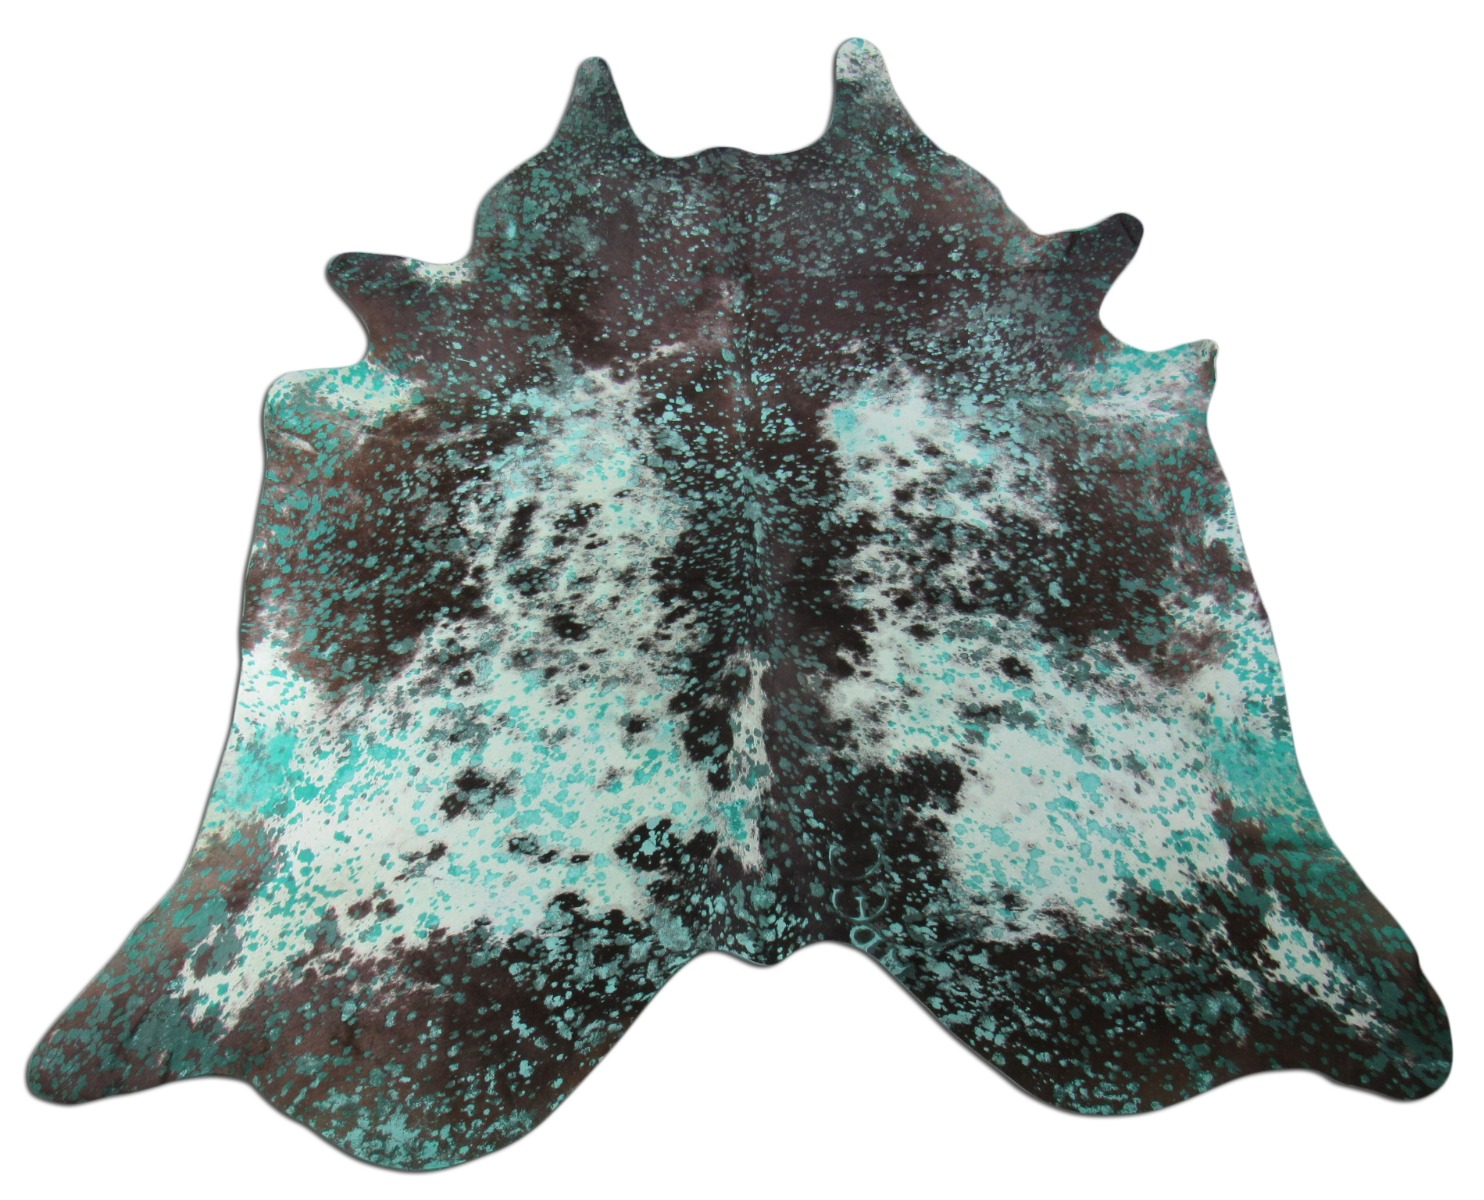 A-1432 Turquoise Acid Washed Cowhide Rug Size: 8' X 6 1/2'